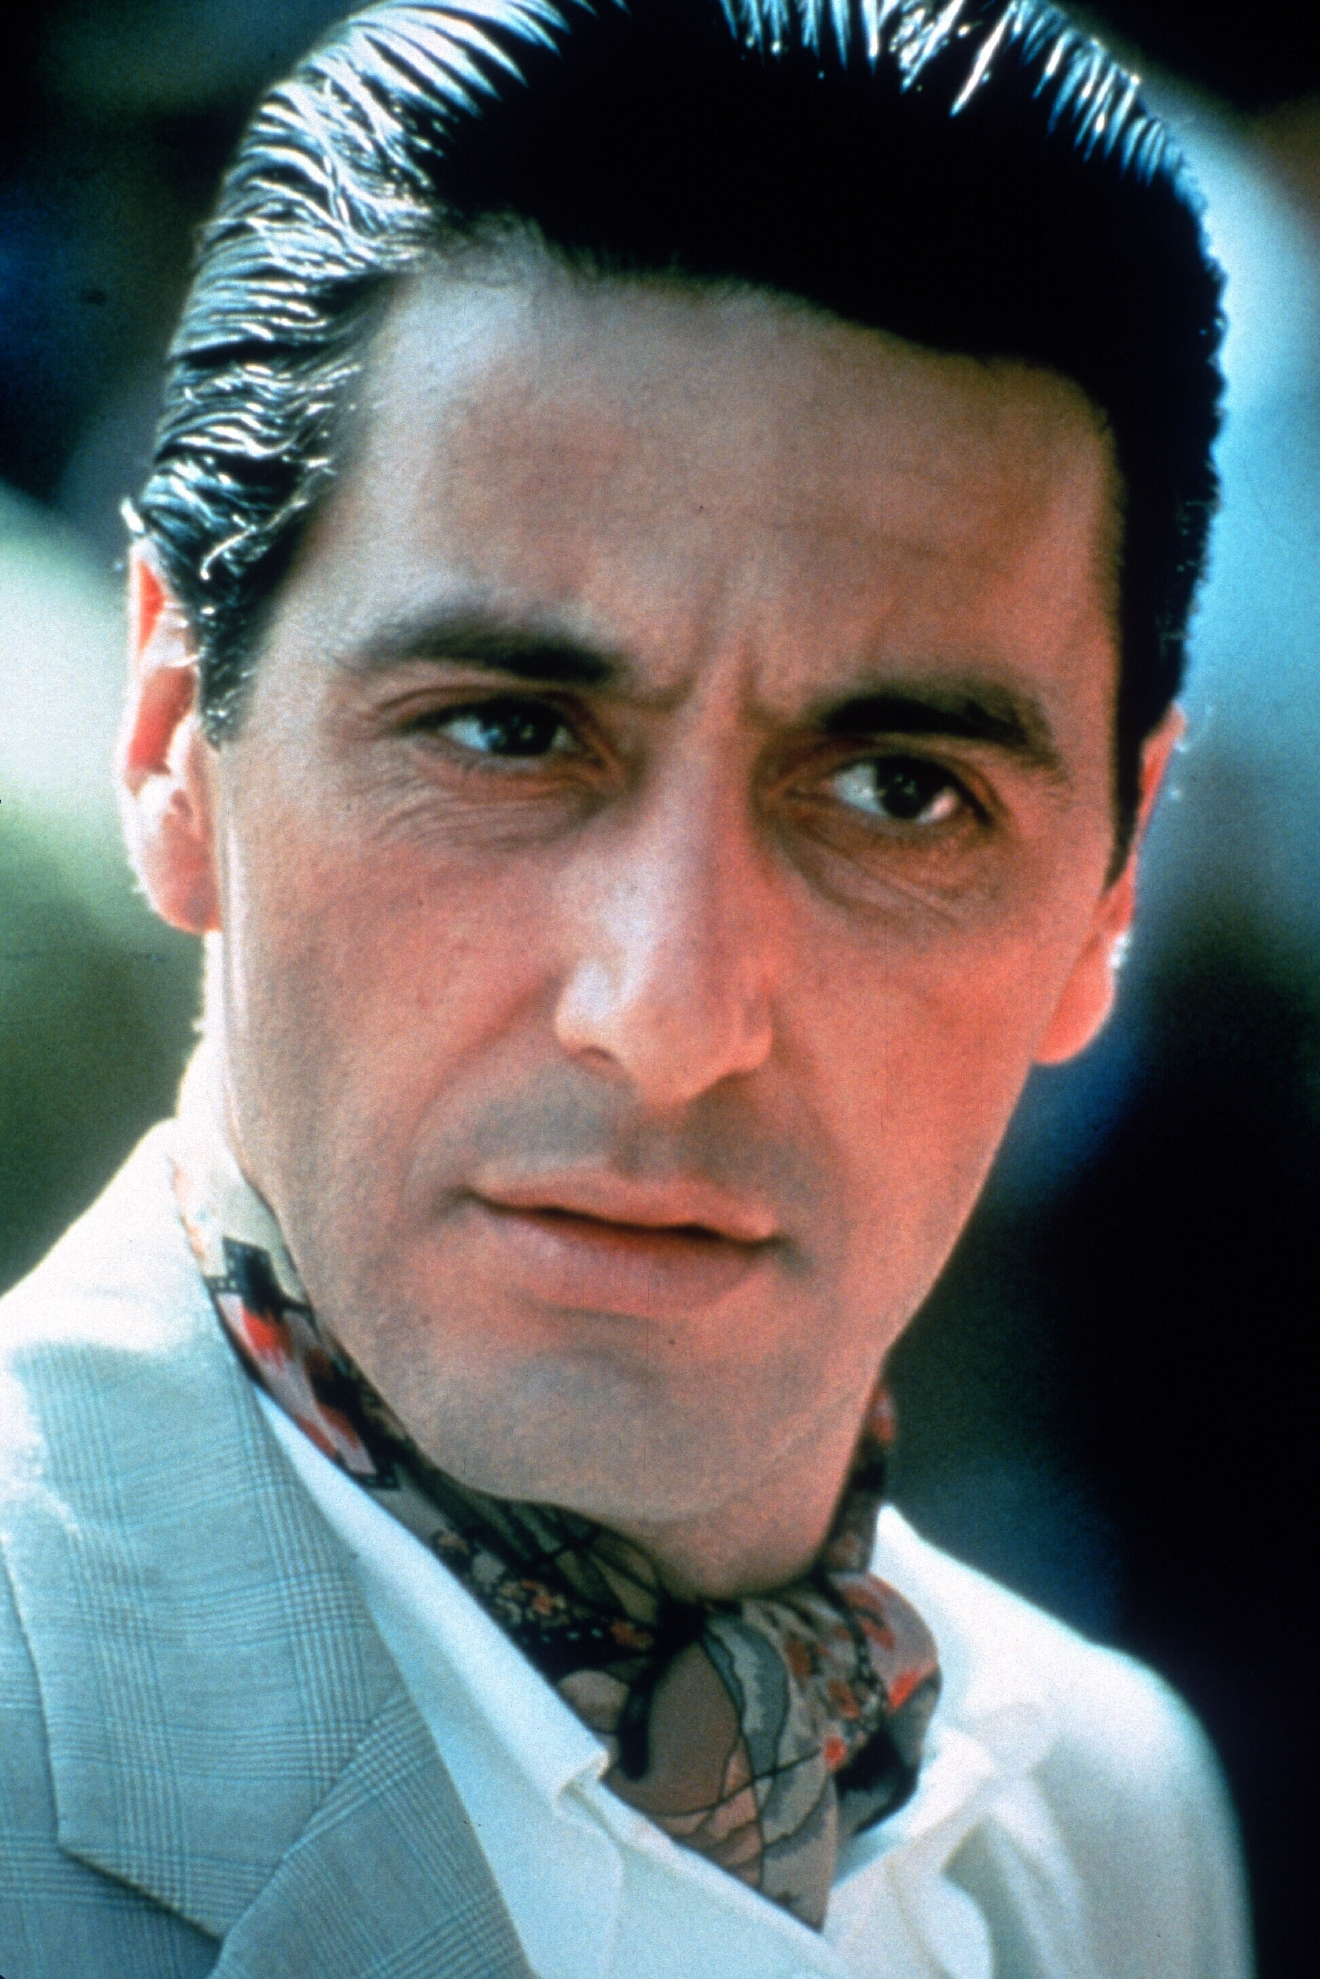 GALLERY: Happy 76th birthday, Al Pacino! | WACH Al Pacino